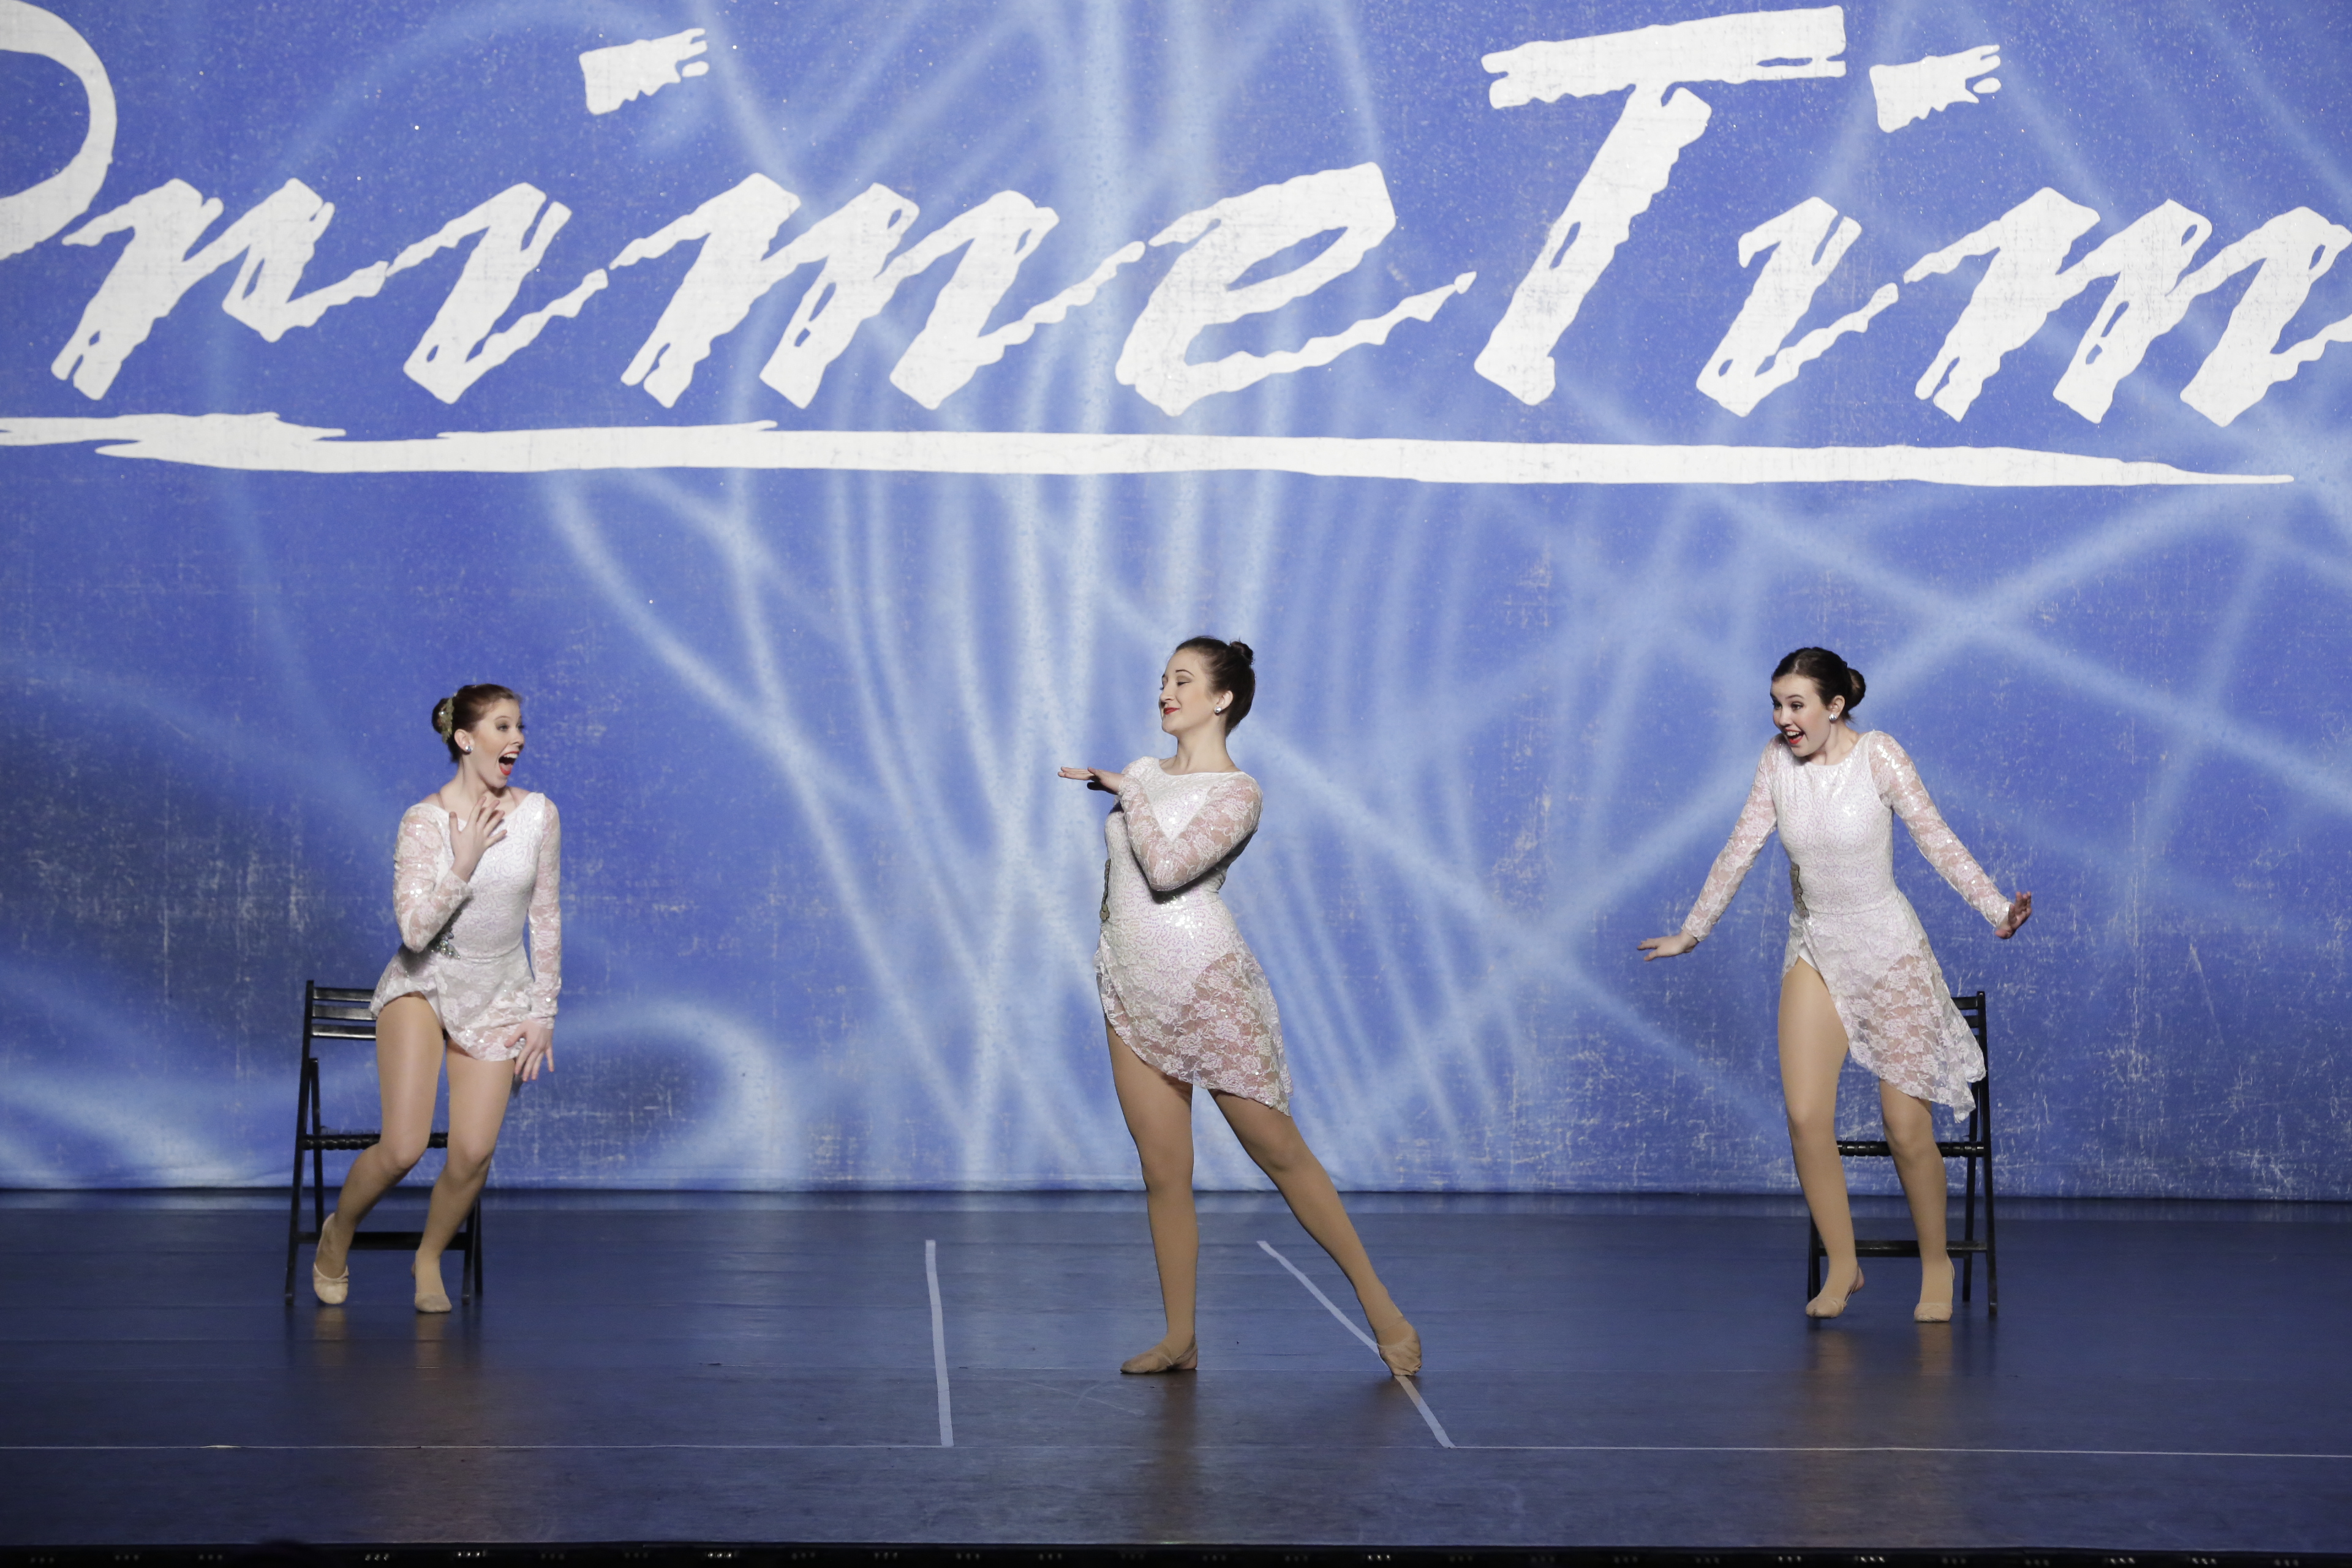 Competitive dancers emoting in white